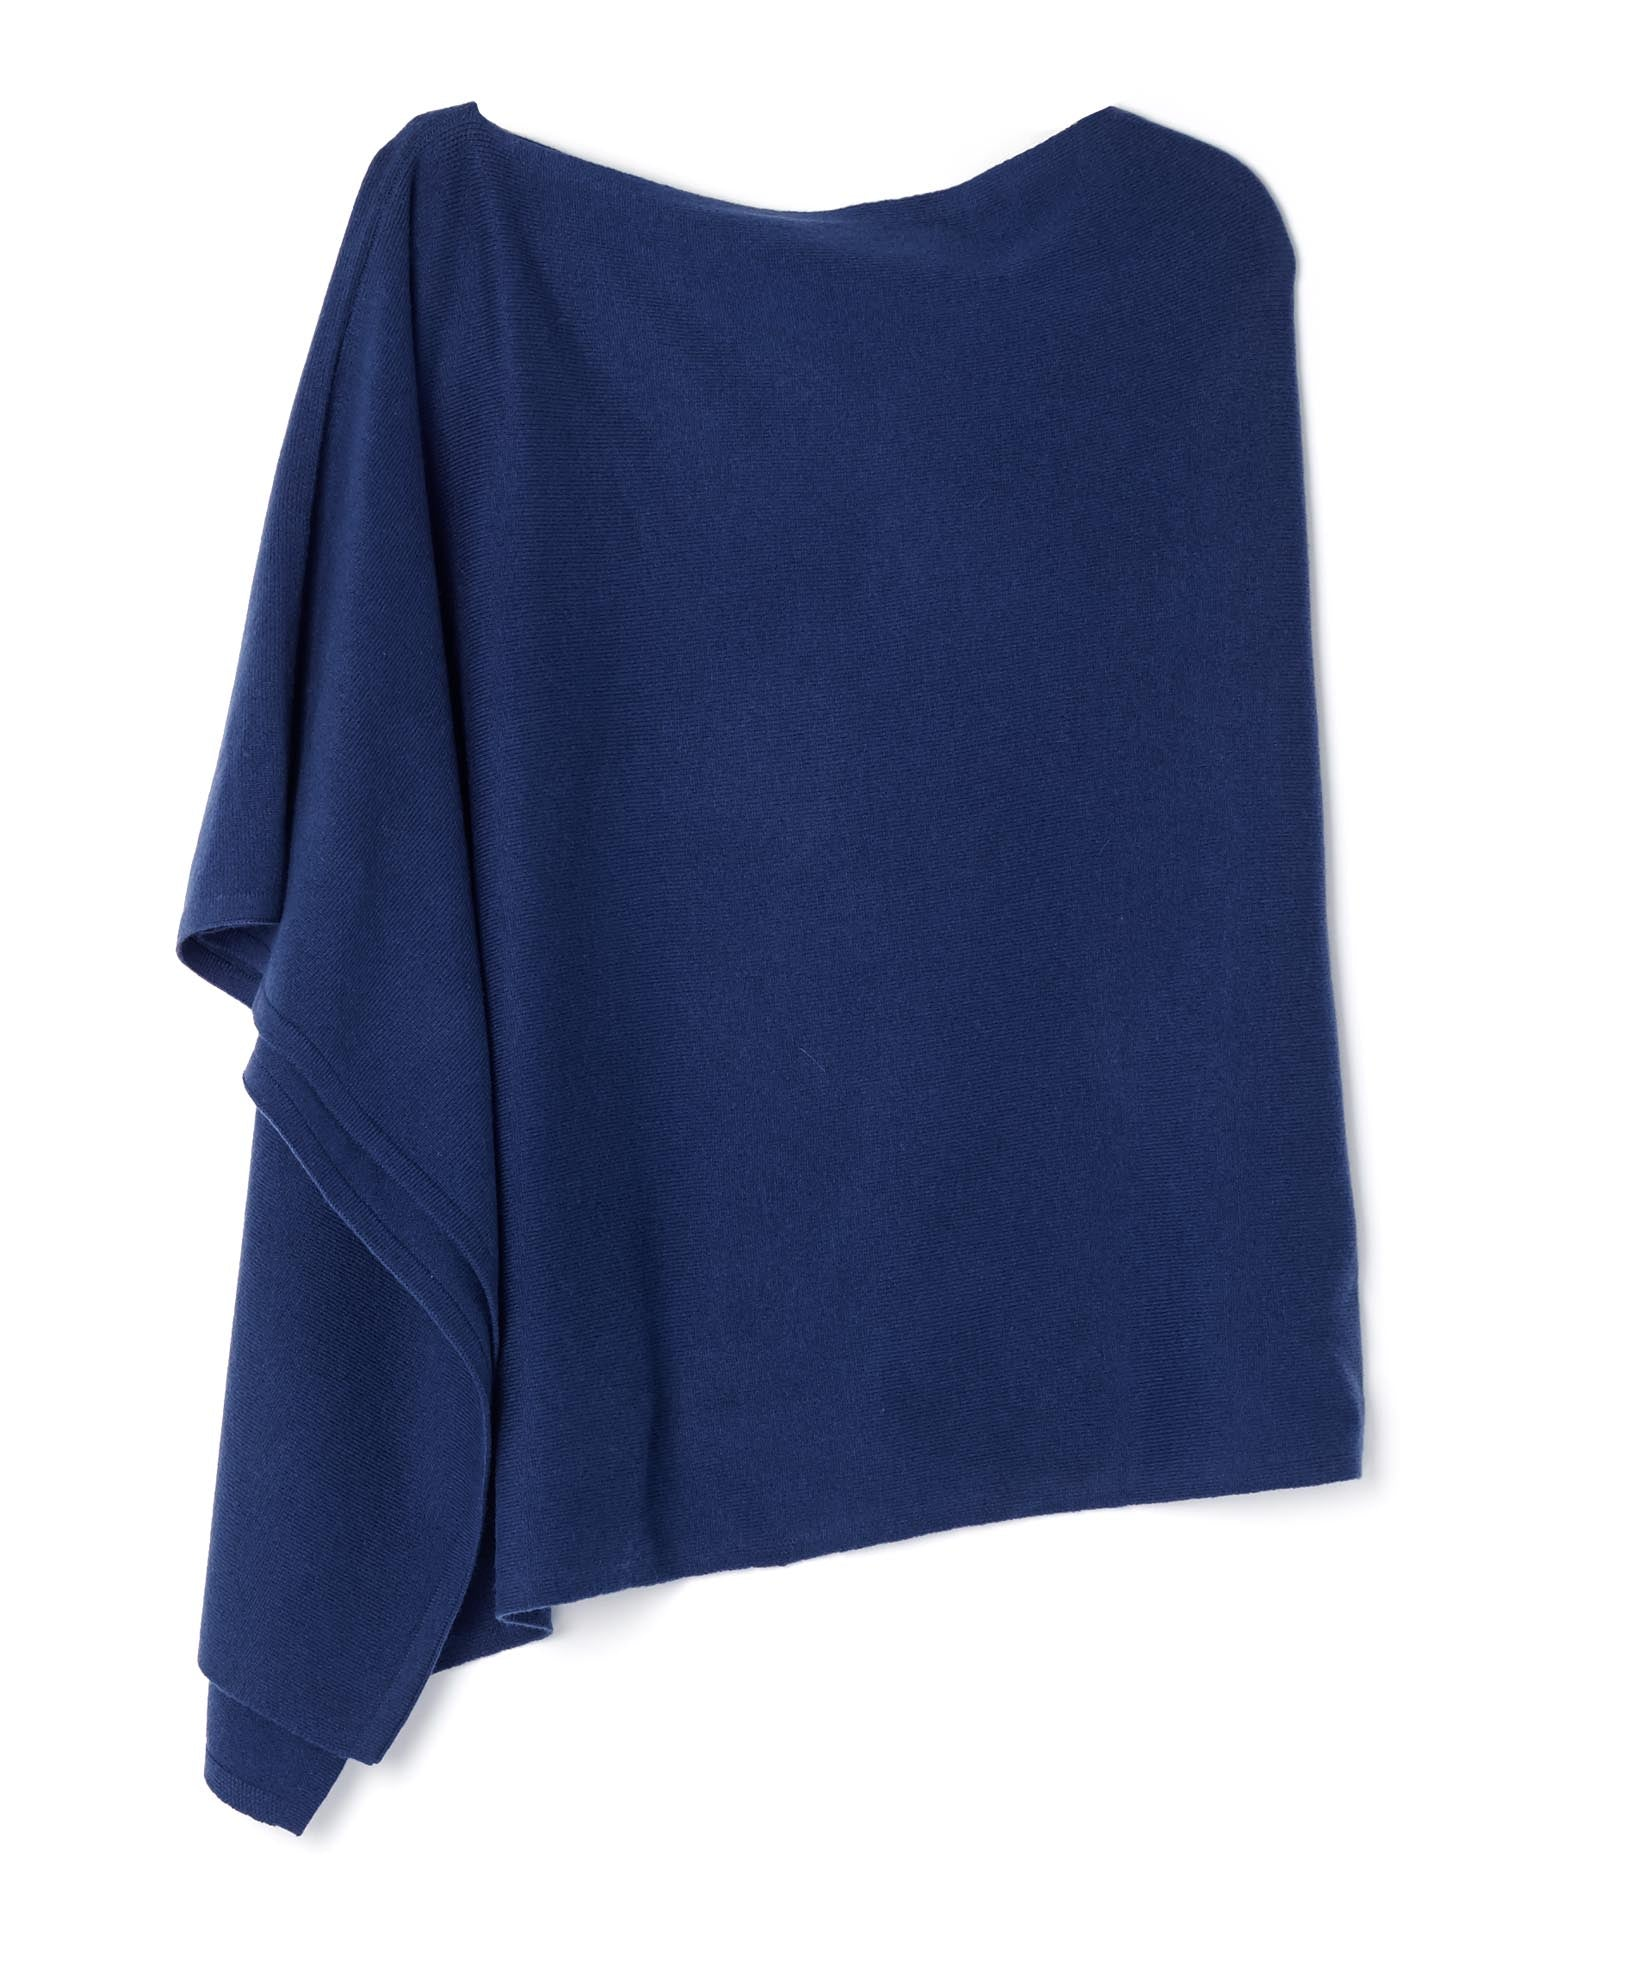 Bright Navy - Cashmere Gradient Topper